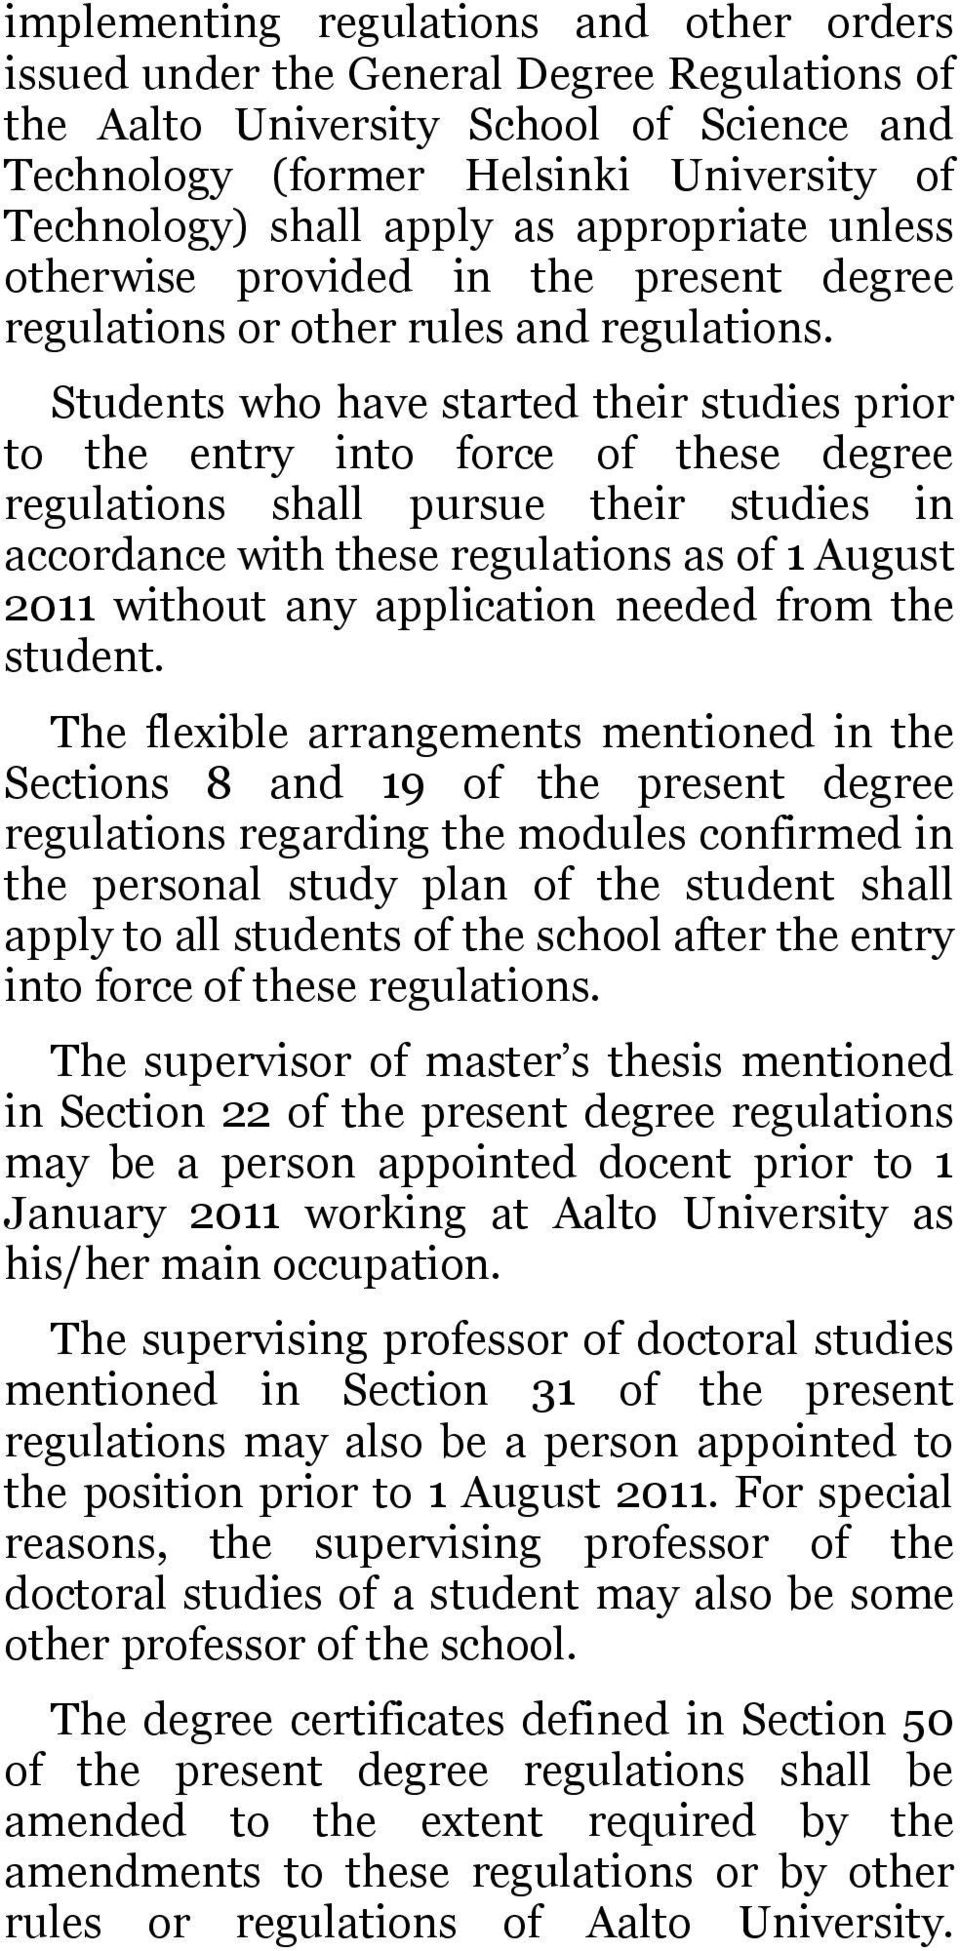 Students who have started their studies prior to the entry into force of these degree regulations shall pursue their studies in accordance with these regulations as of 1 August 2011 without any